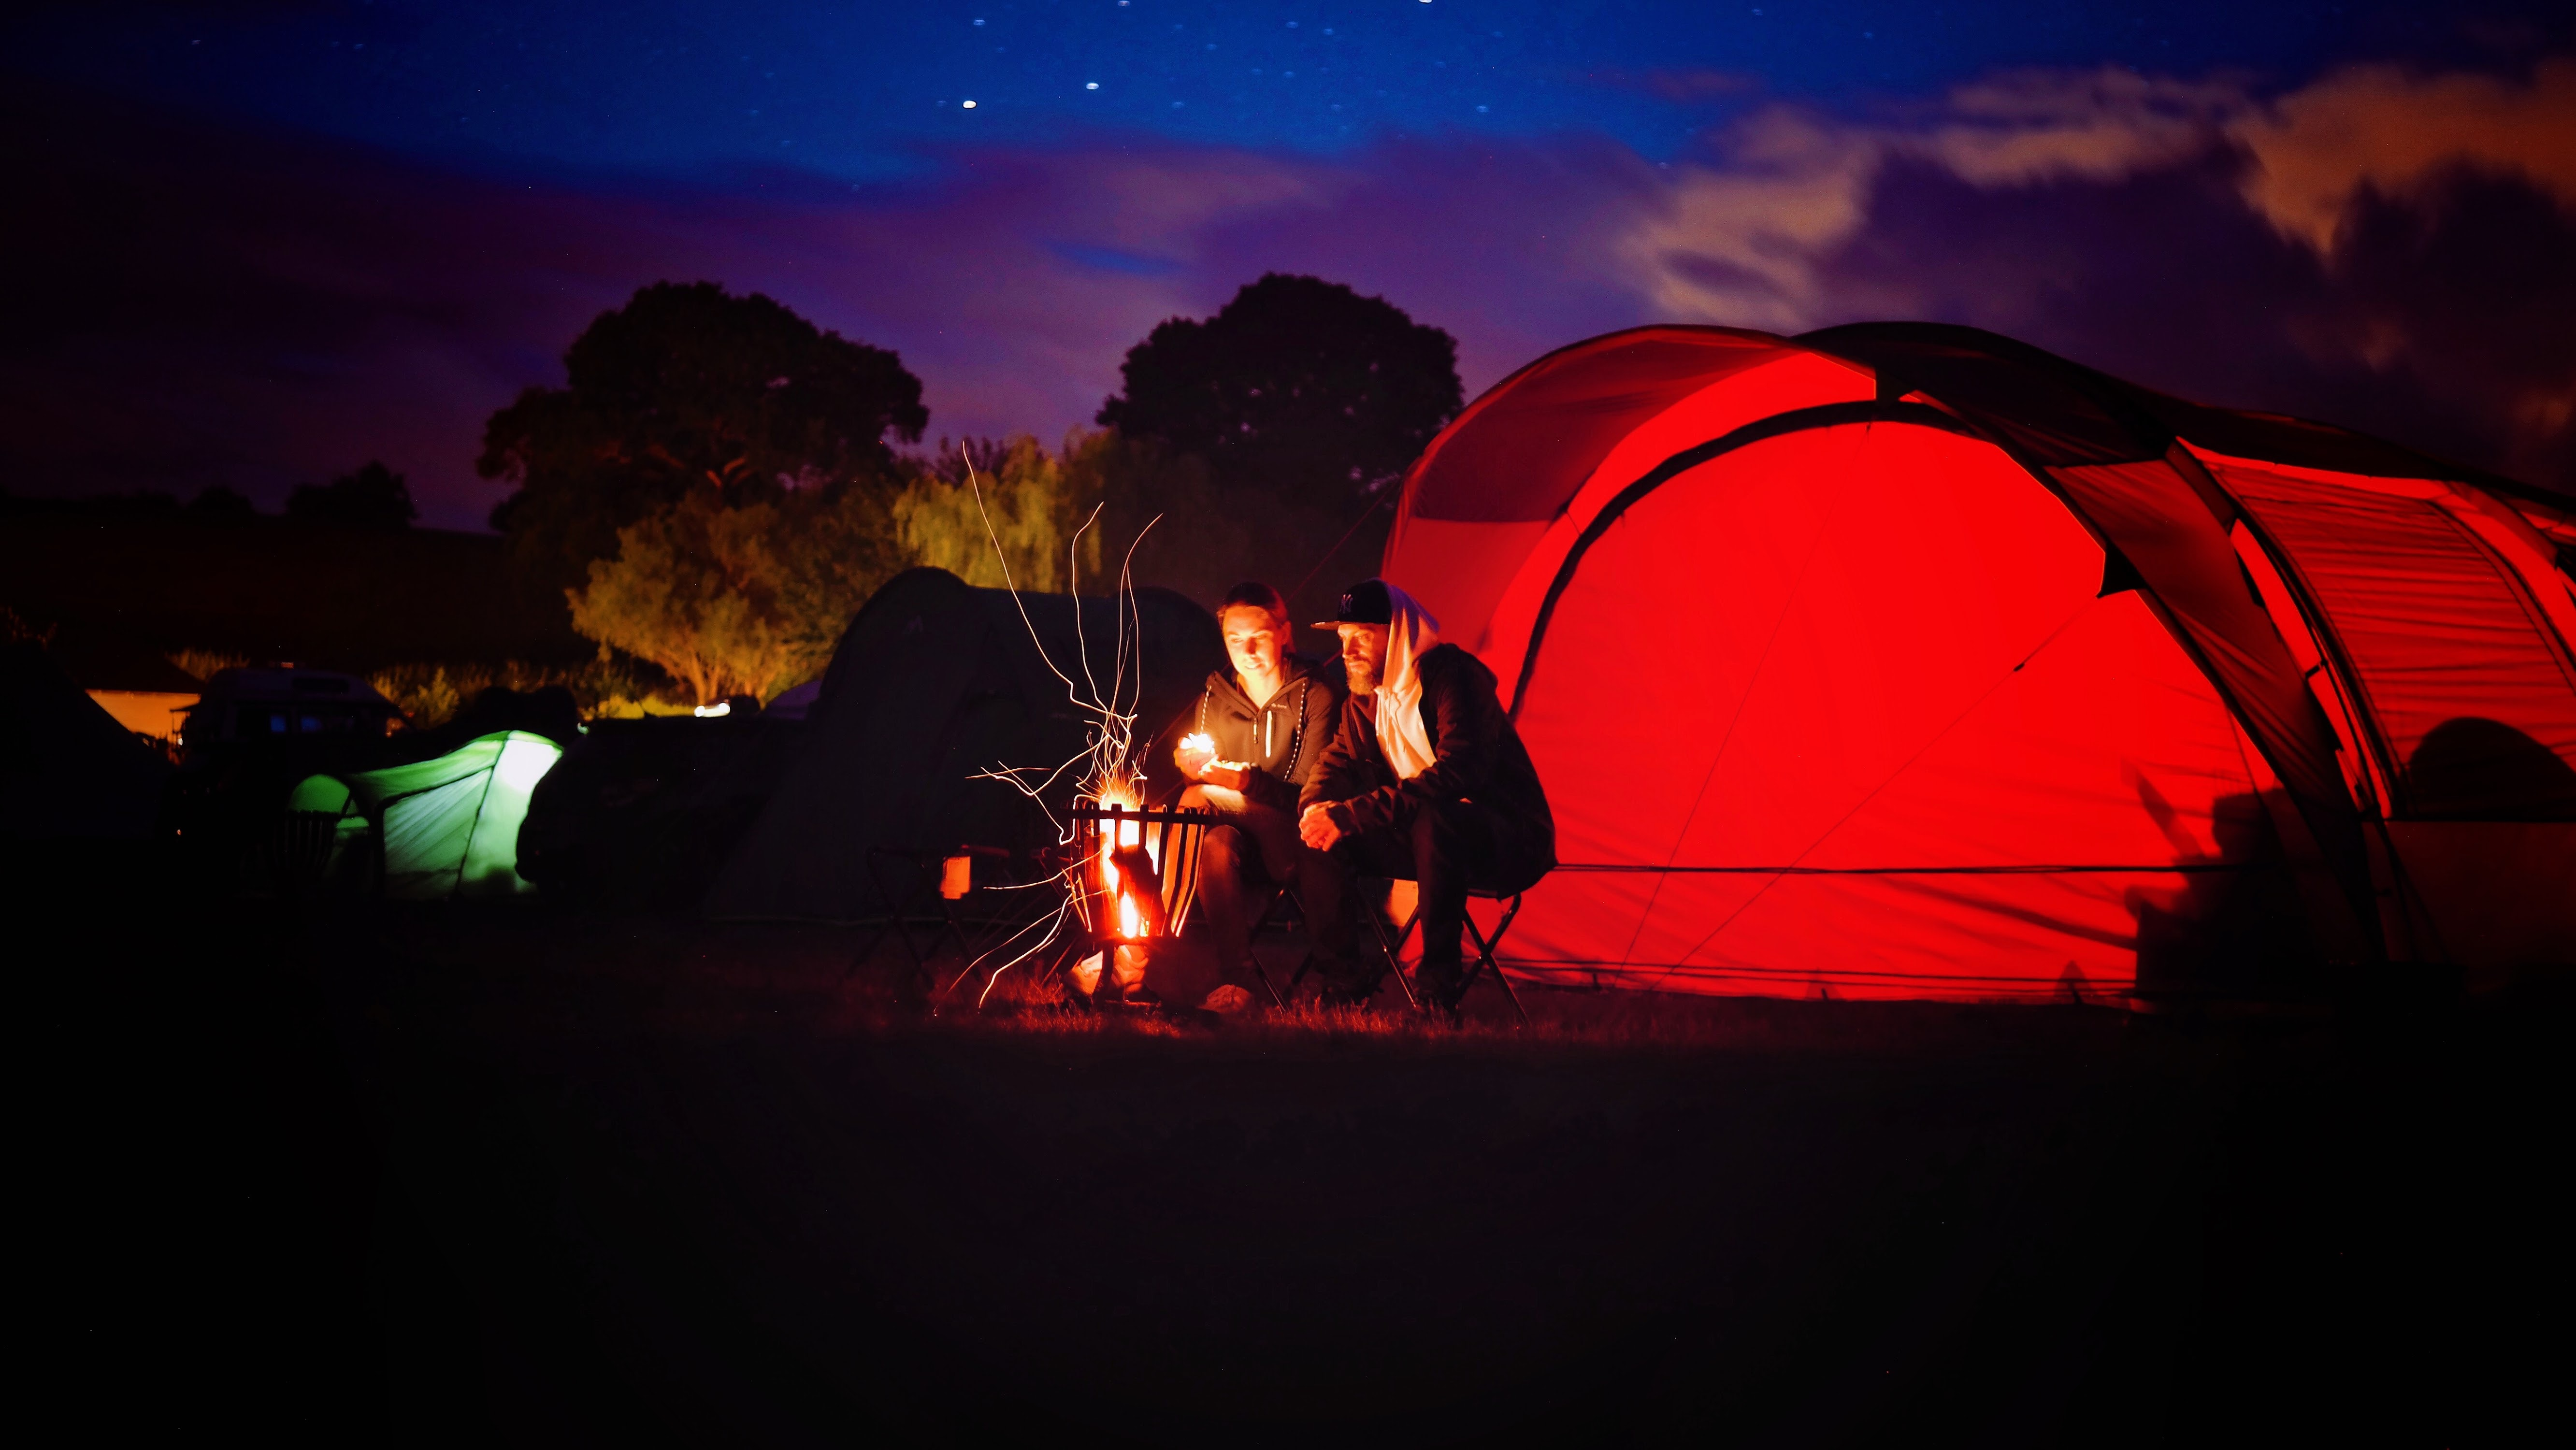 Man and woman sitting beside bonfire during nigh time photo